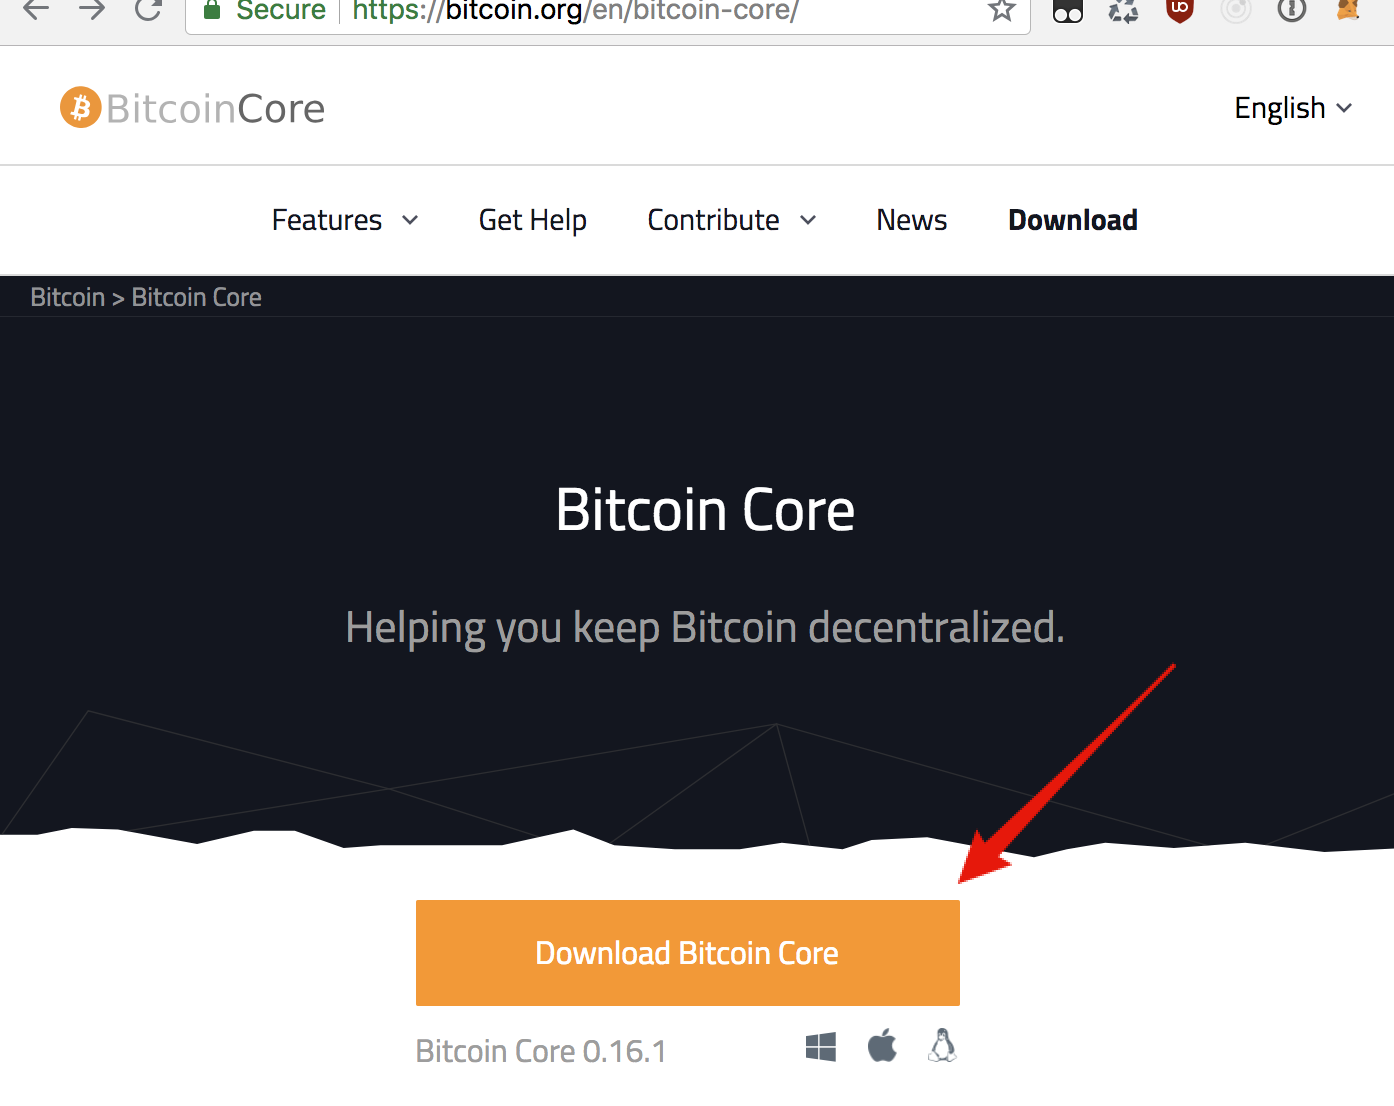 Bitcoin Lightning Network #1: Can I compile and run a node?